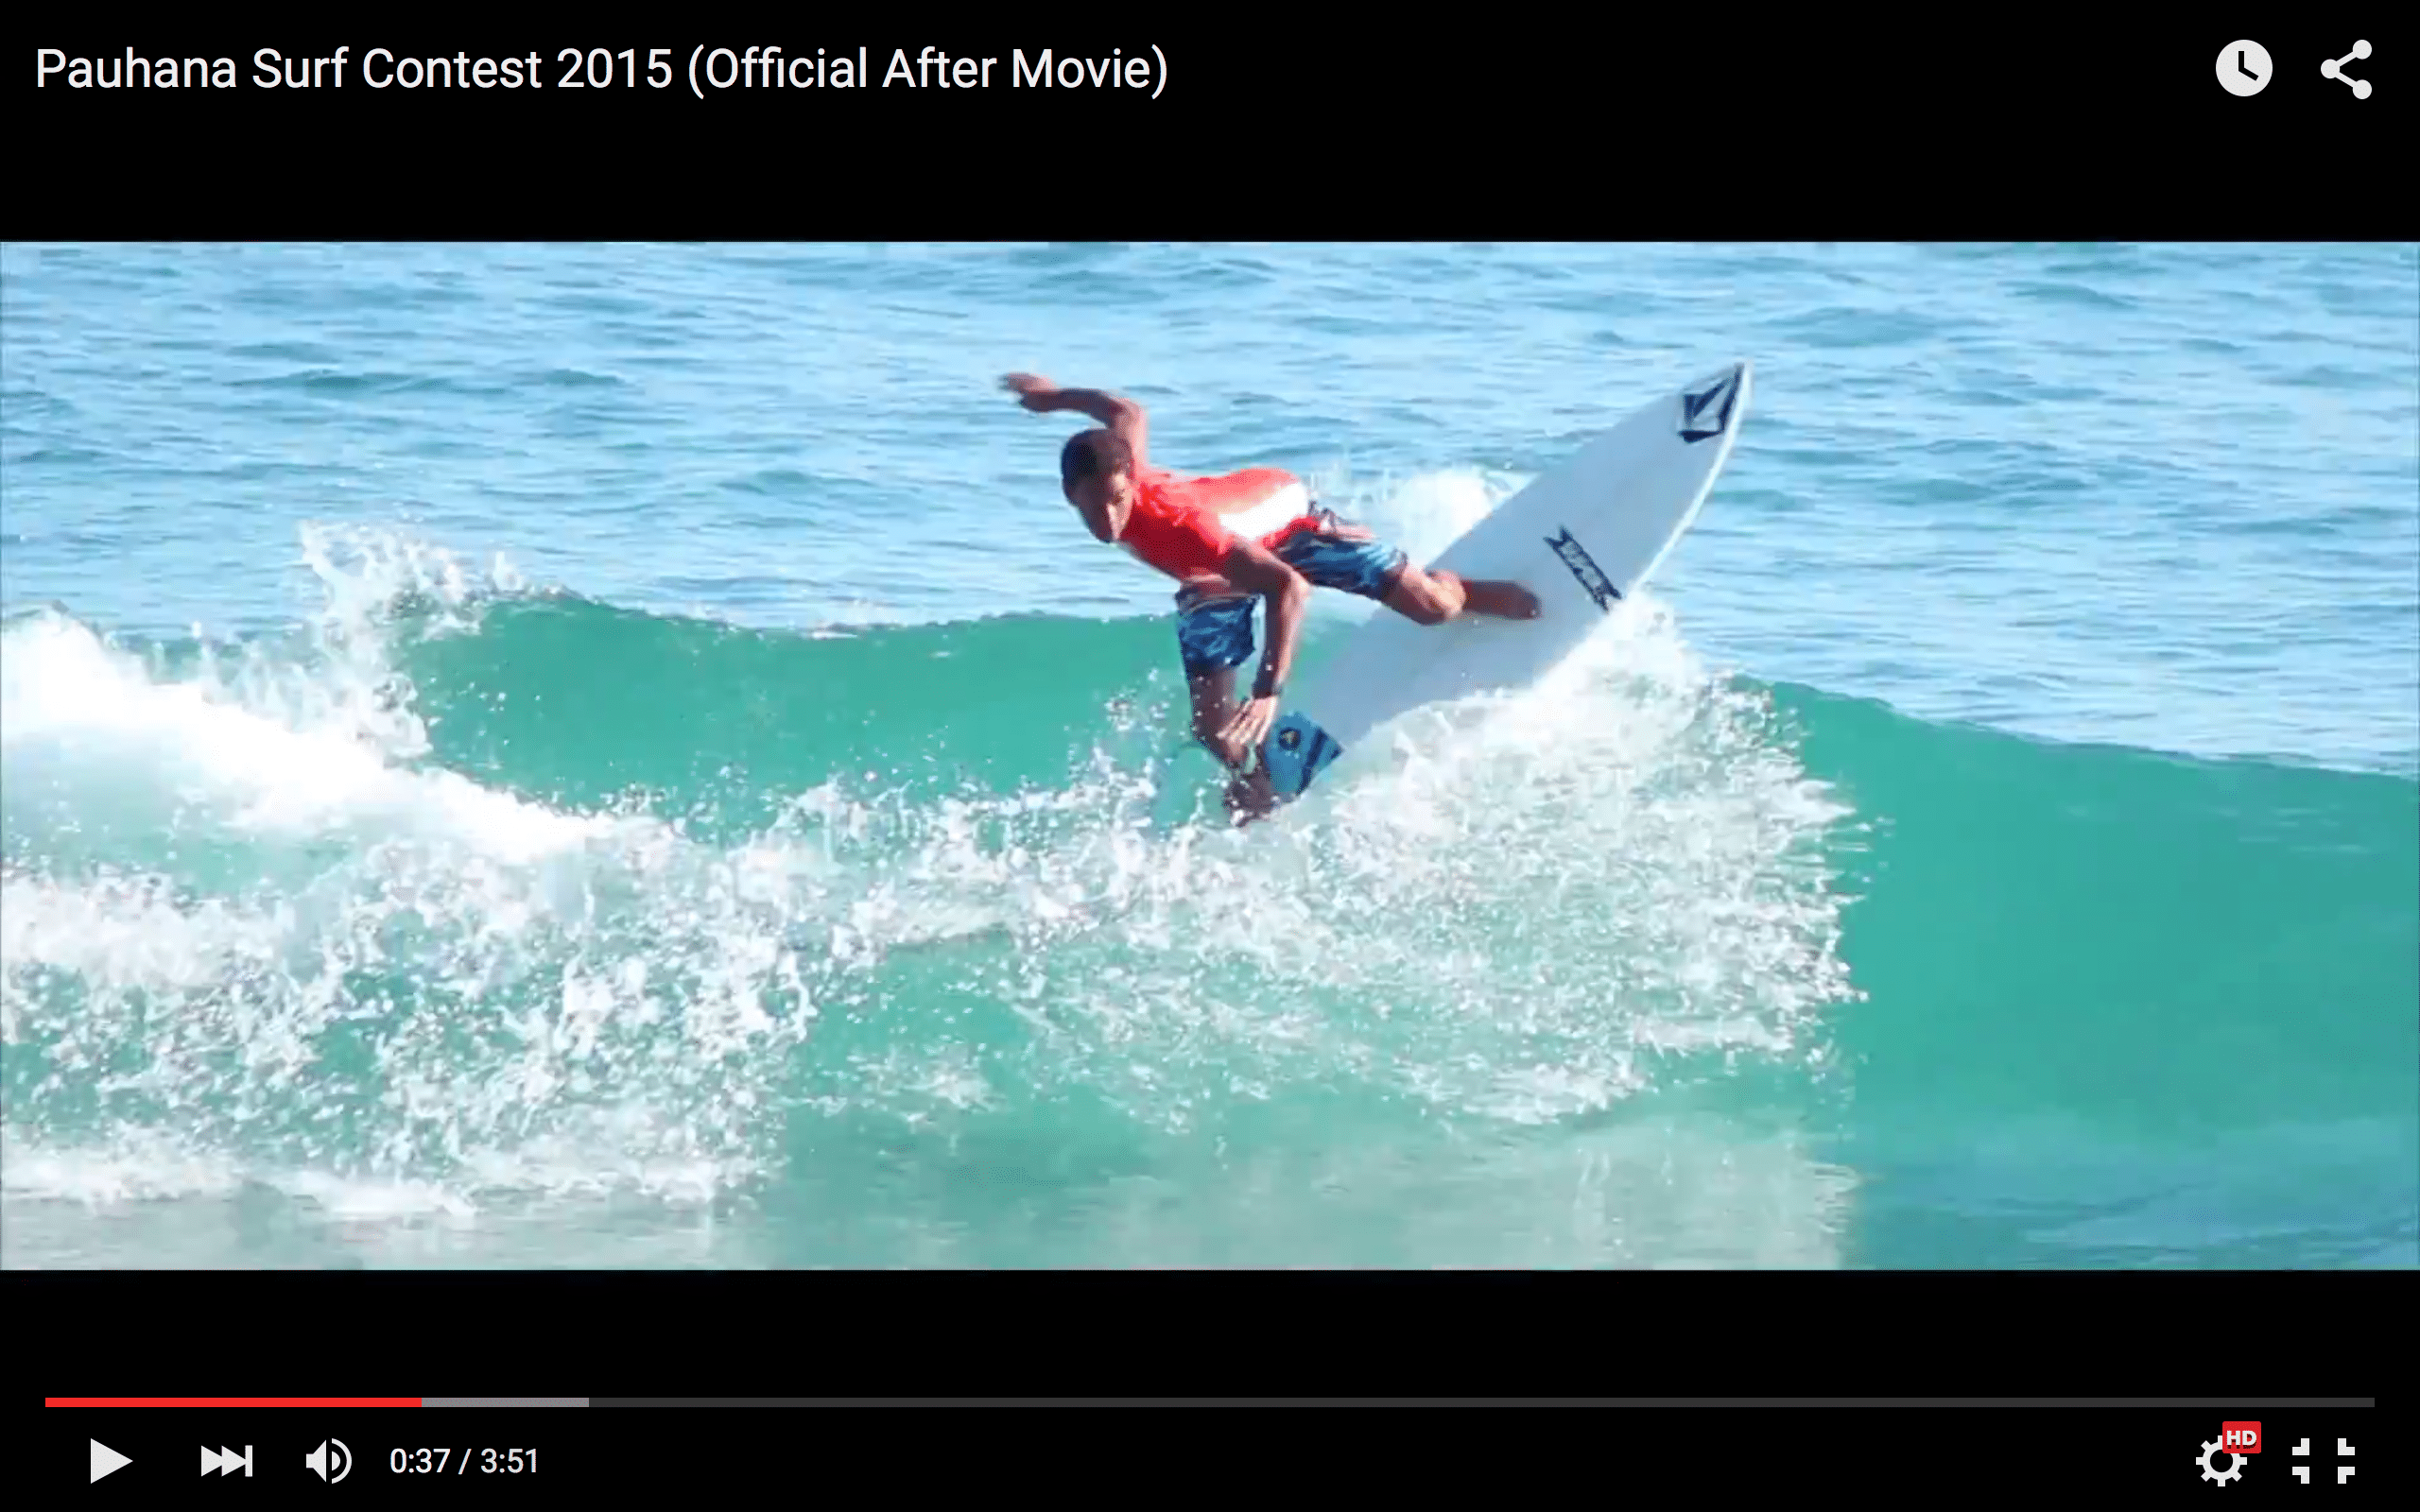 2015 Pauhana Surf Contest Video